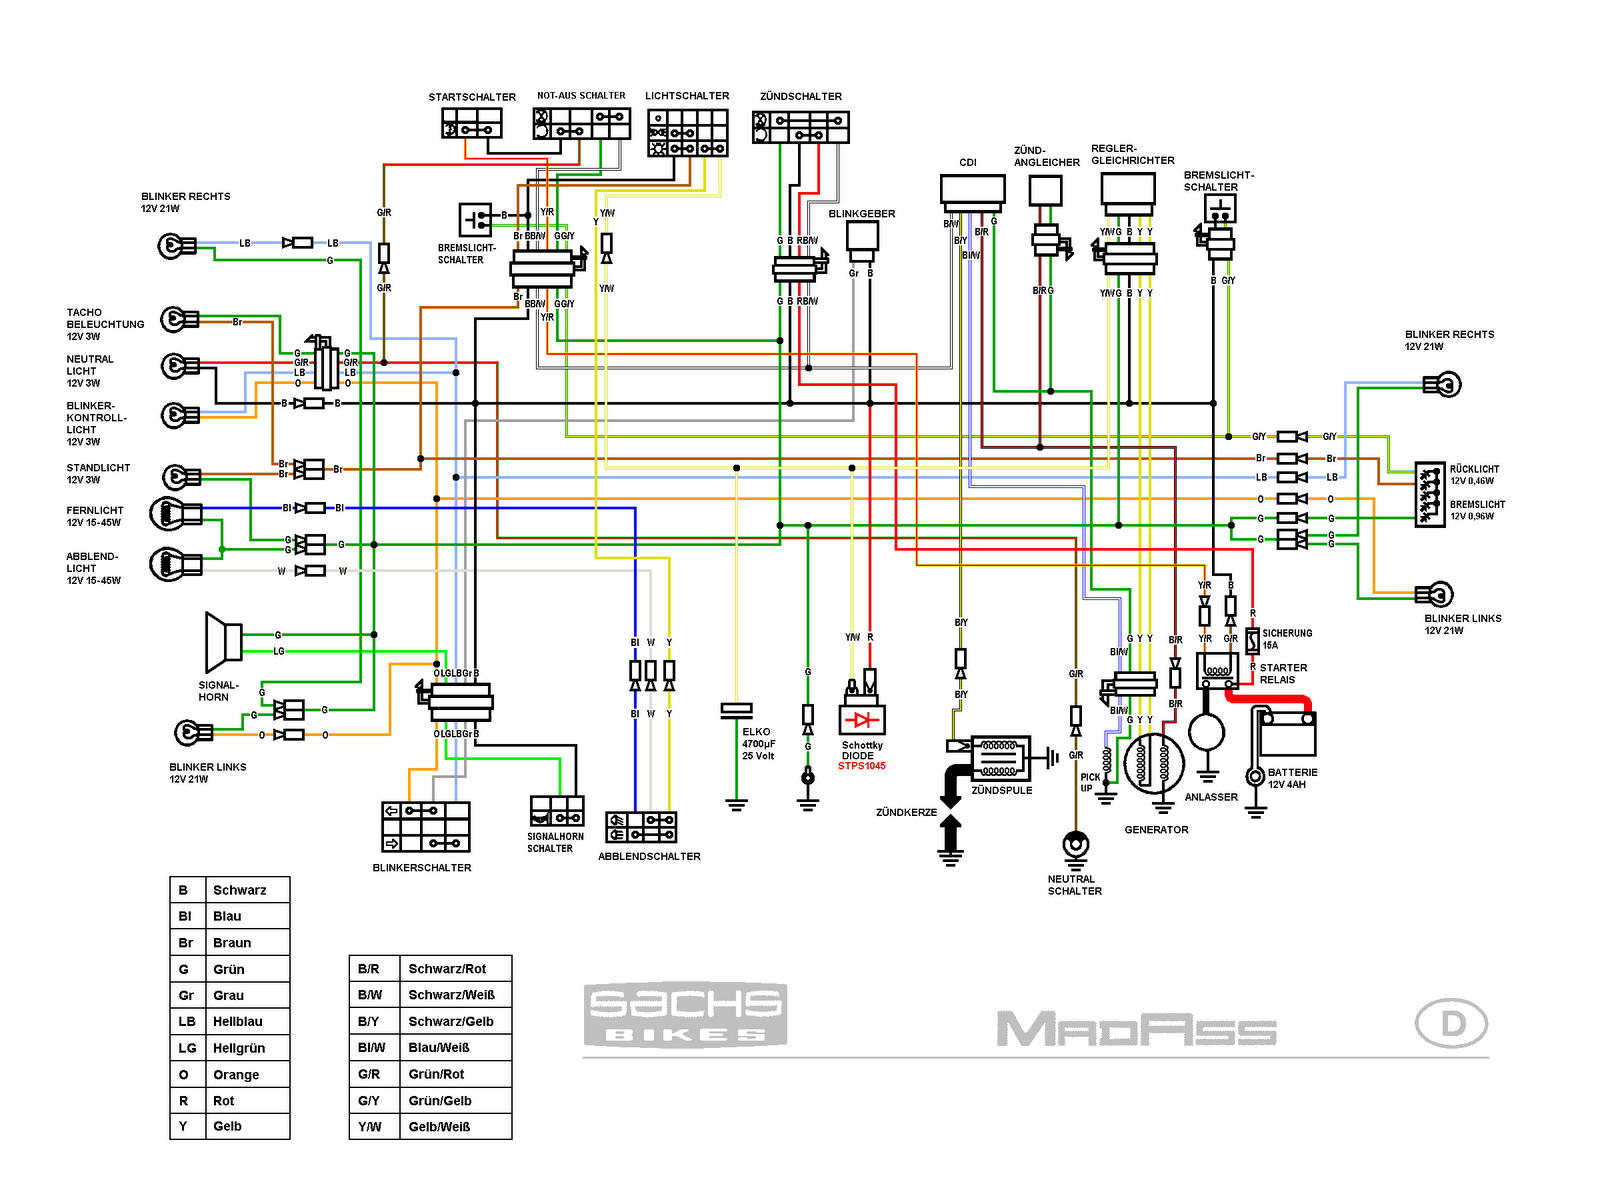 small resolution of wiring diagram 2007 gsxr 600 cbr1000rr wiring free 05 gsxr 600 headlight wiring diagram 2005 suzuki gsxr 600 wiring diagram